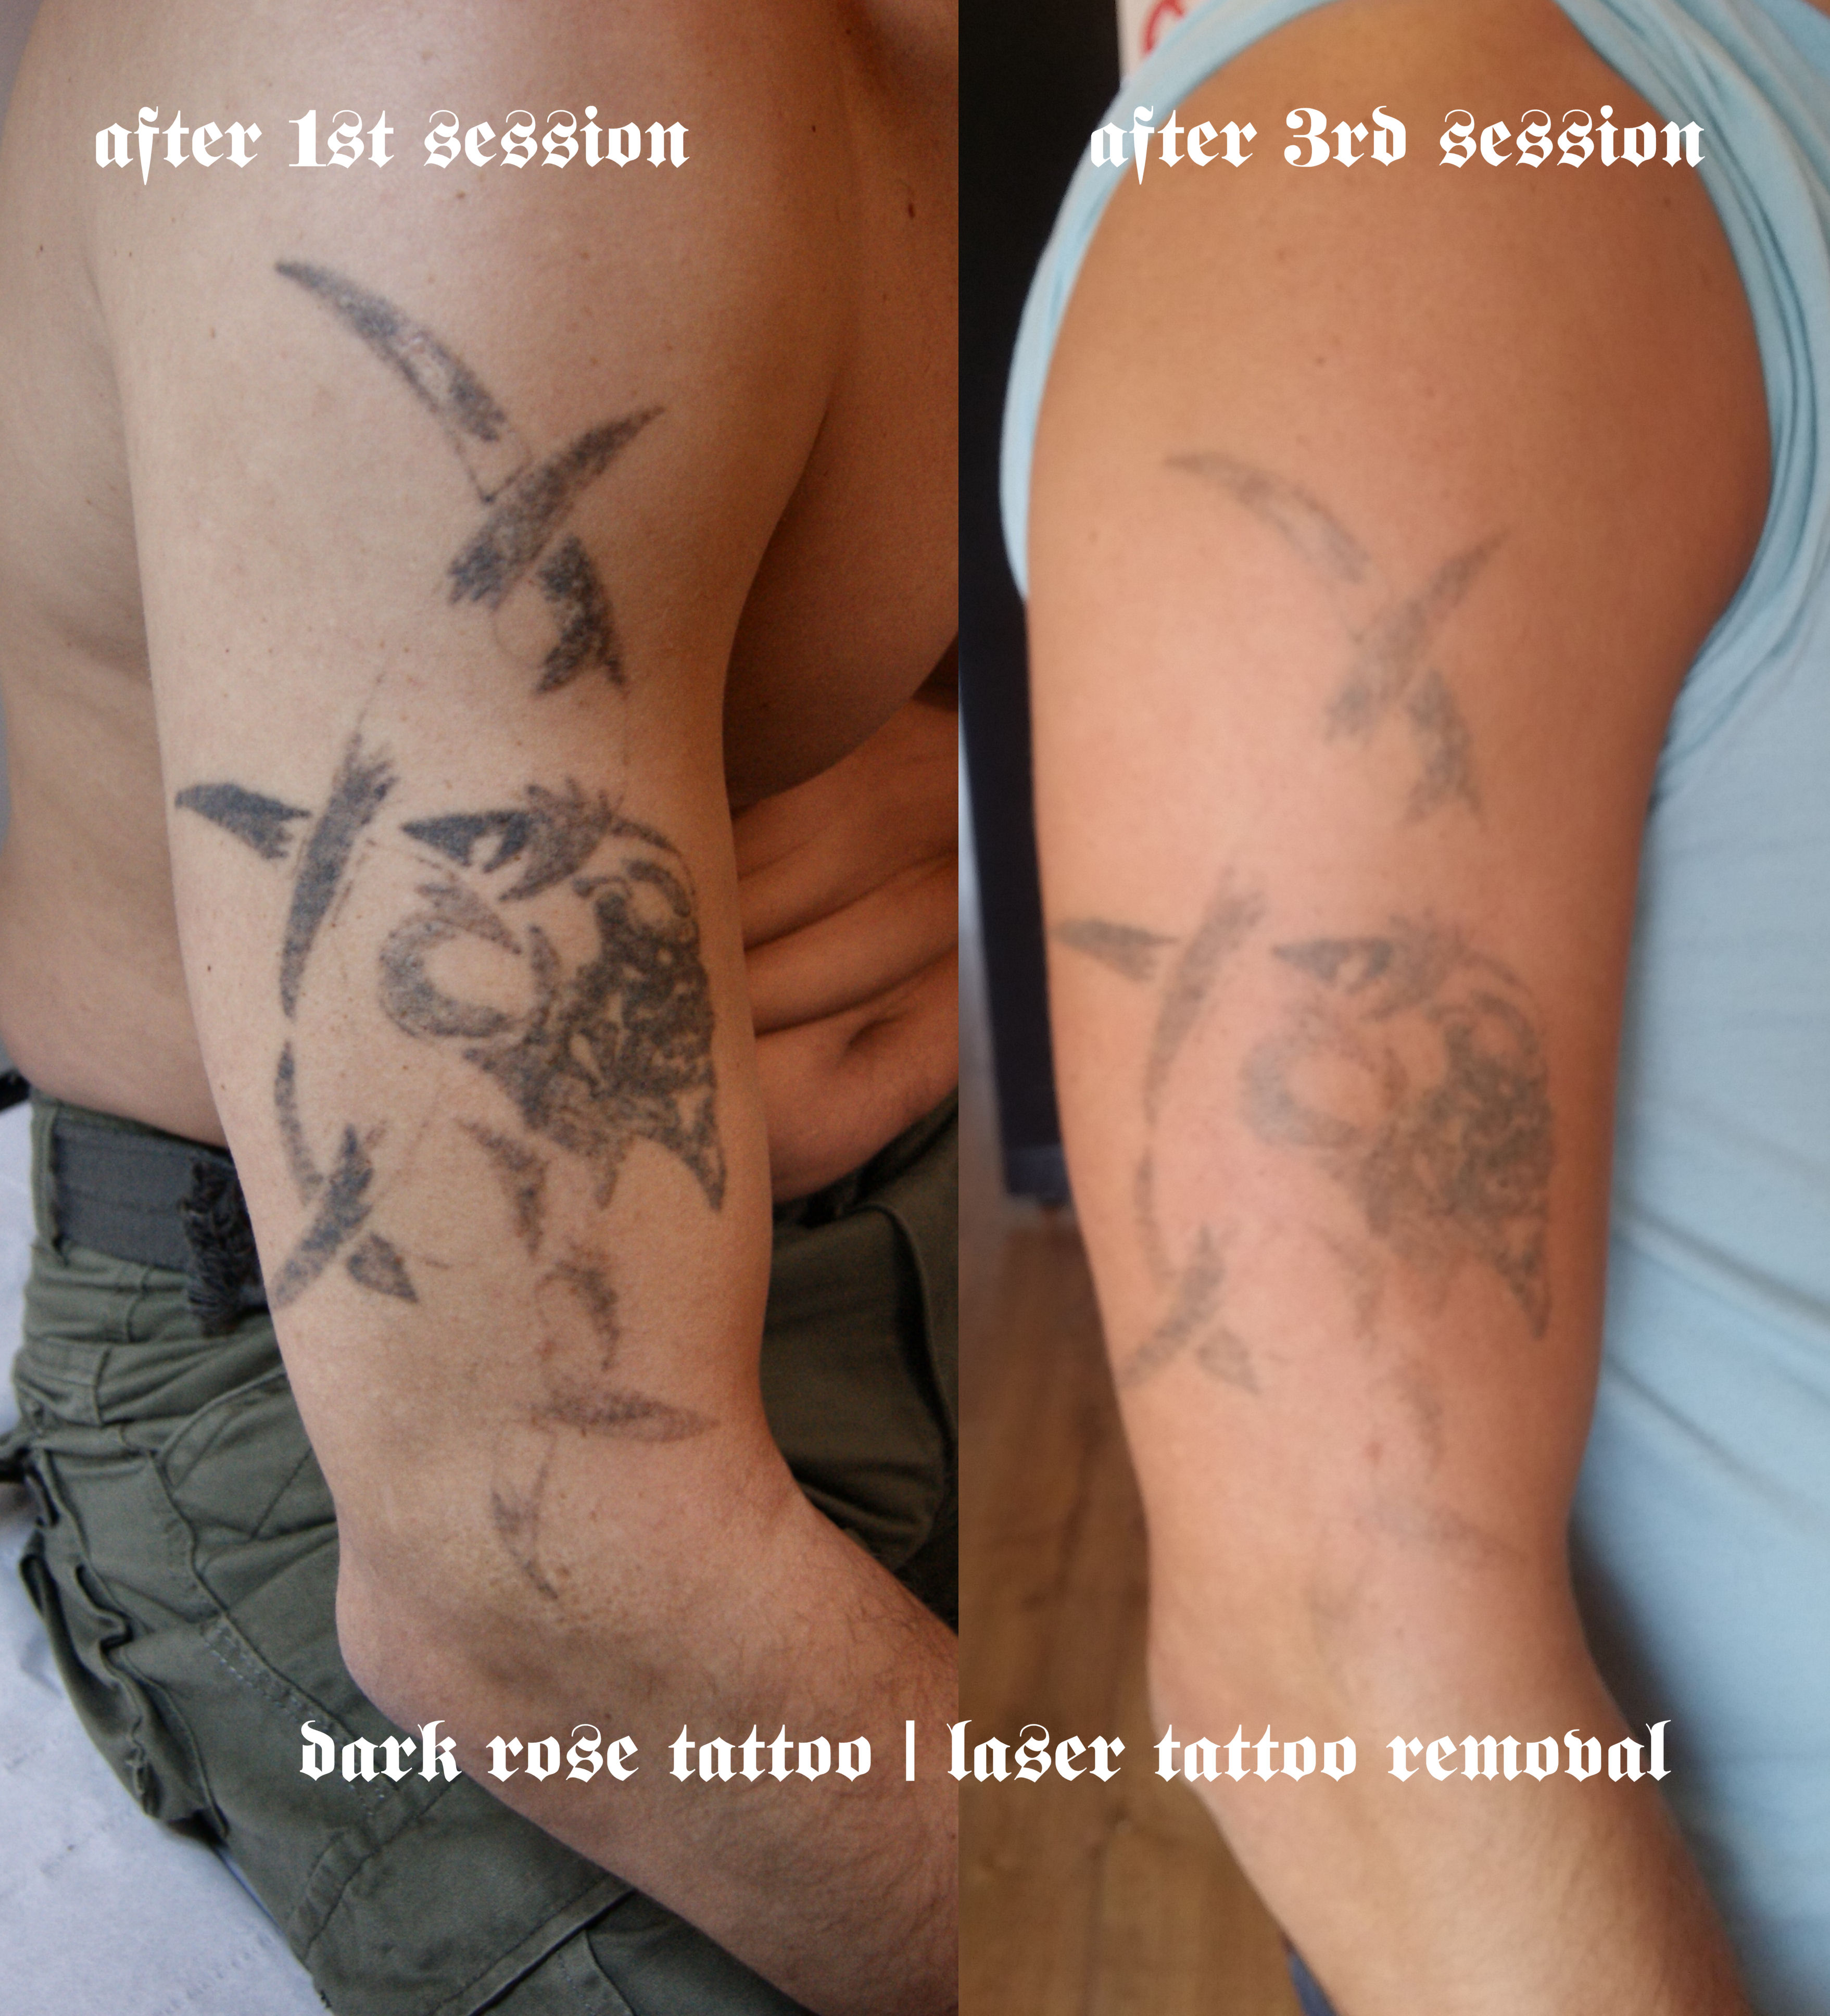 Tattoo and Permanent make-up removal with laser. | Dark Rose Tattoo